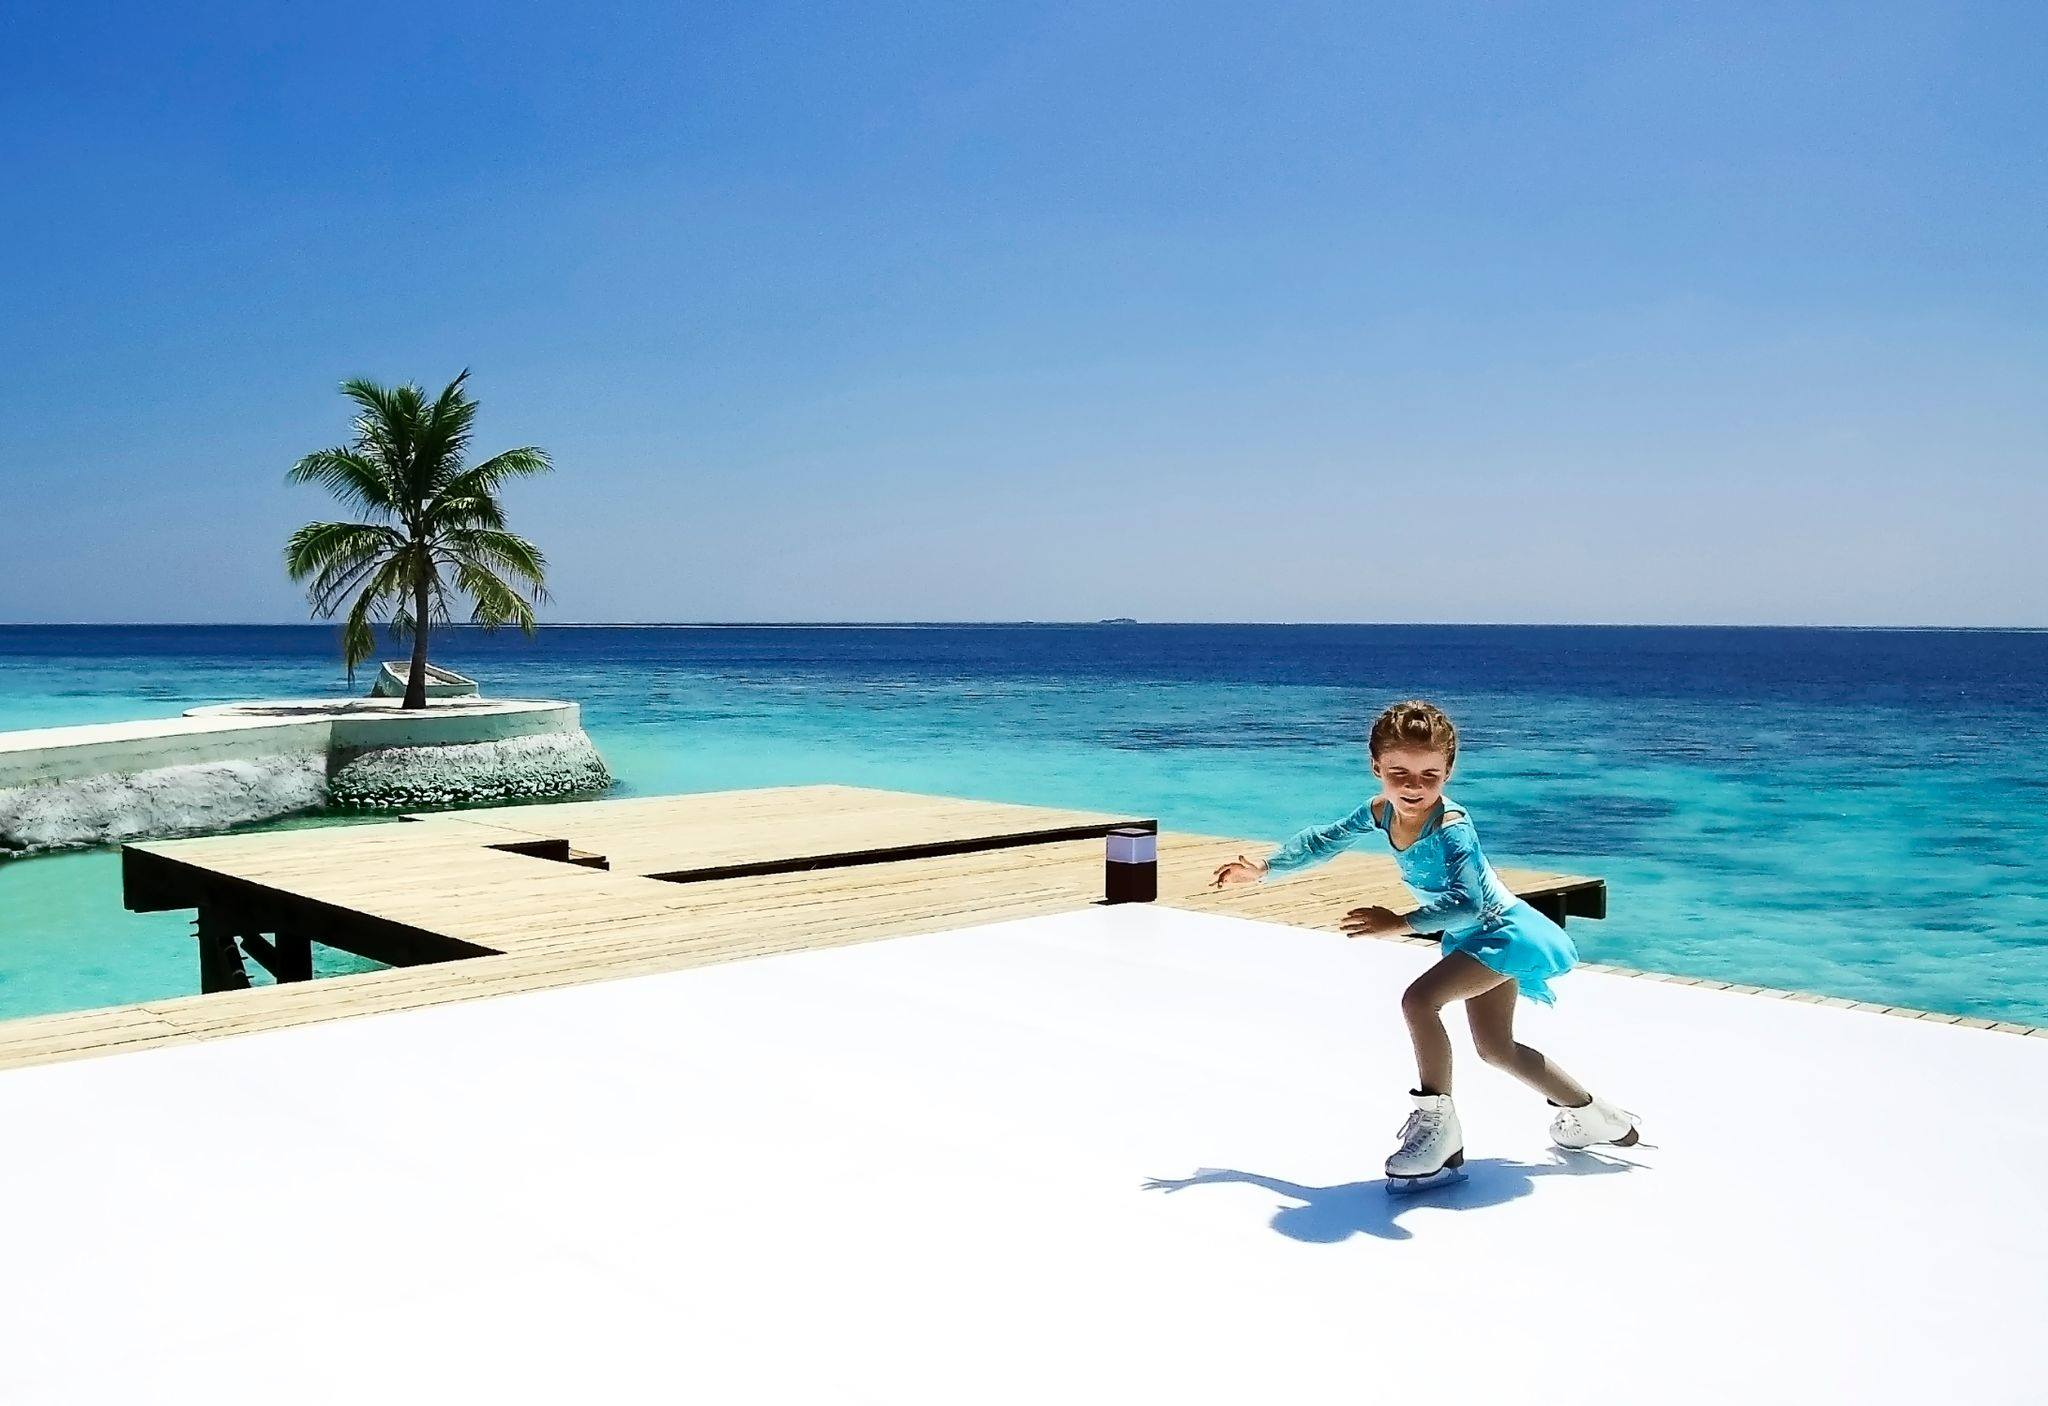 Jumeirah-Vittaveli-introduces-first-Ice-Rink-in-the-Maldives